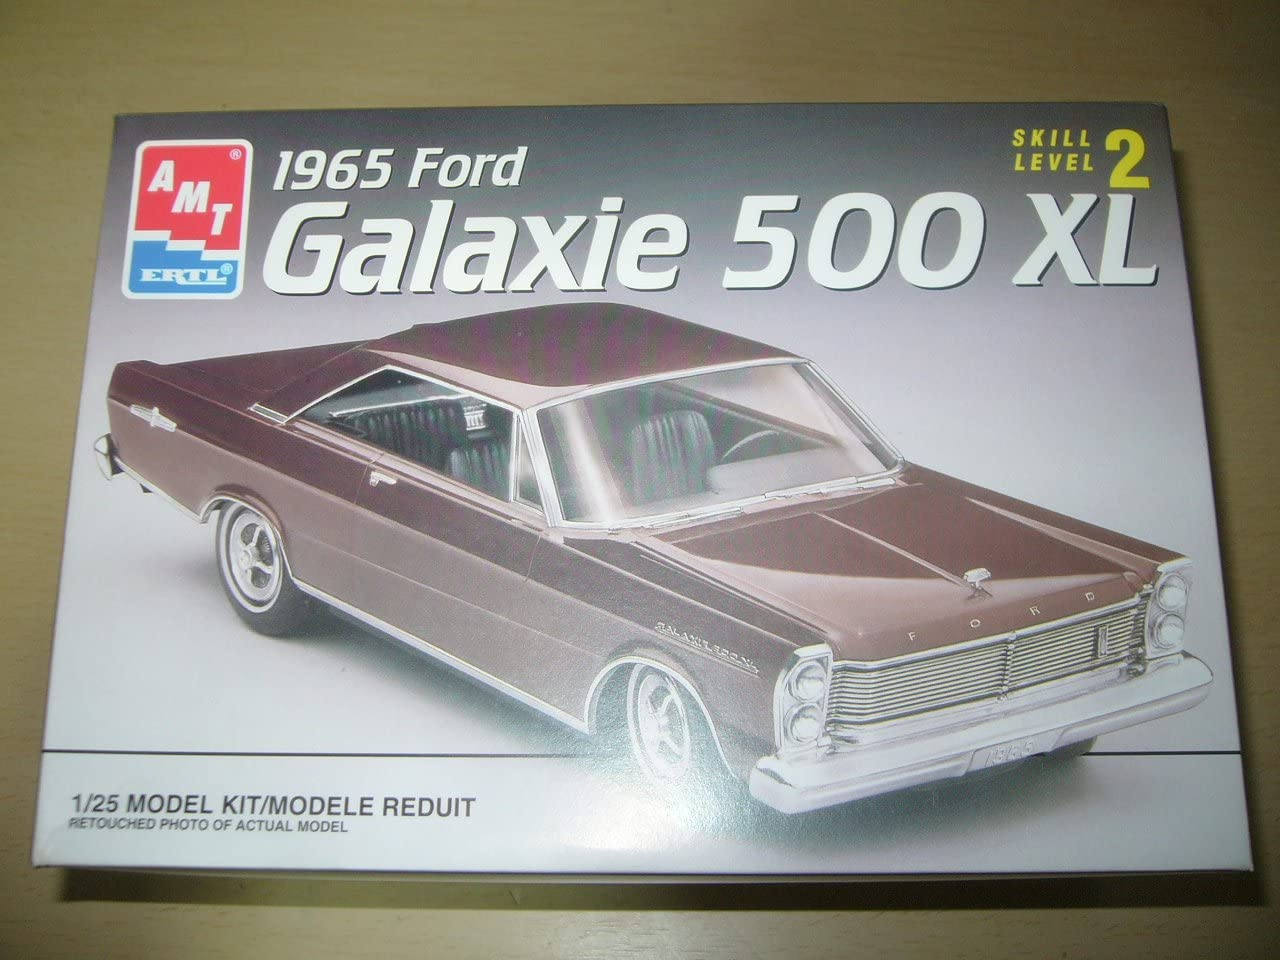 1965 Ford Galaxie 500 XL